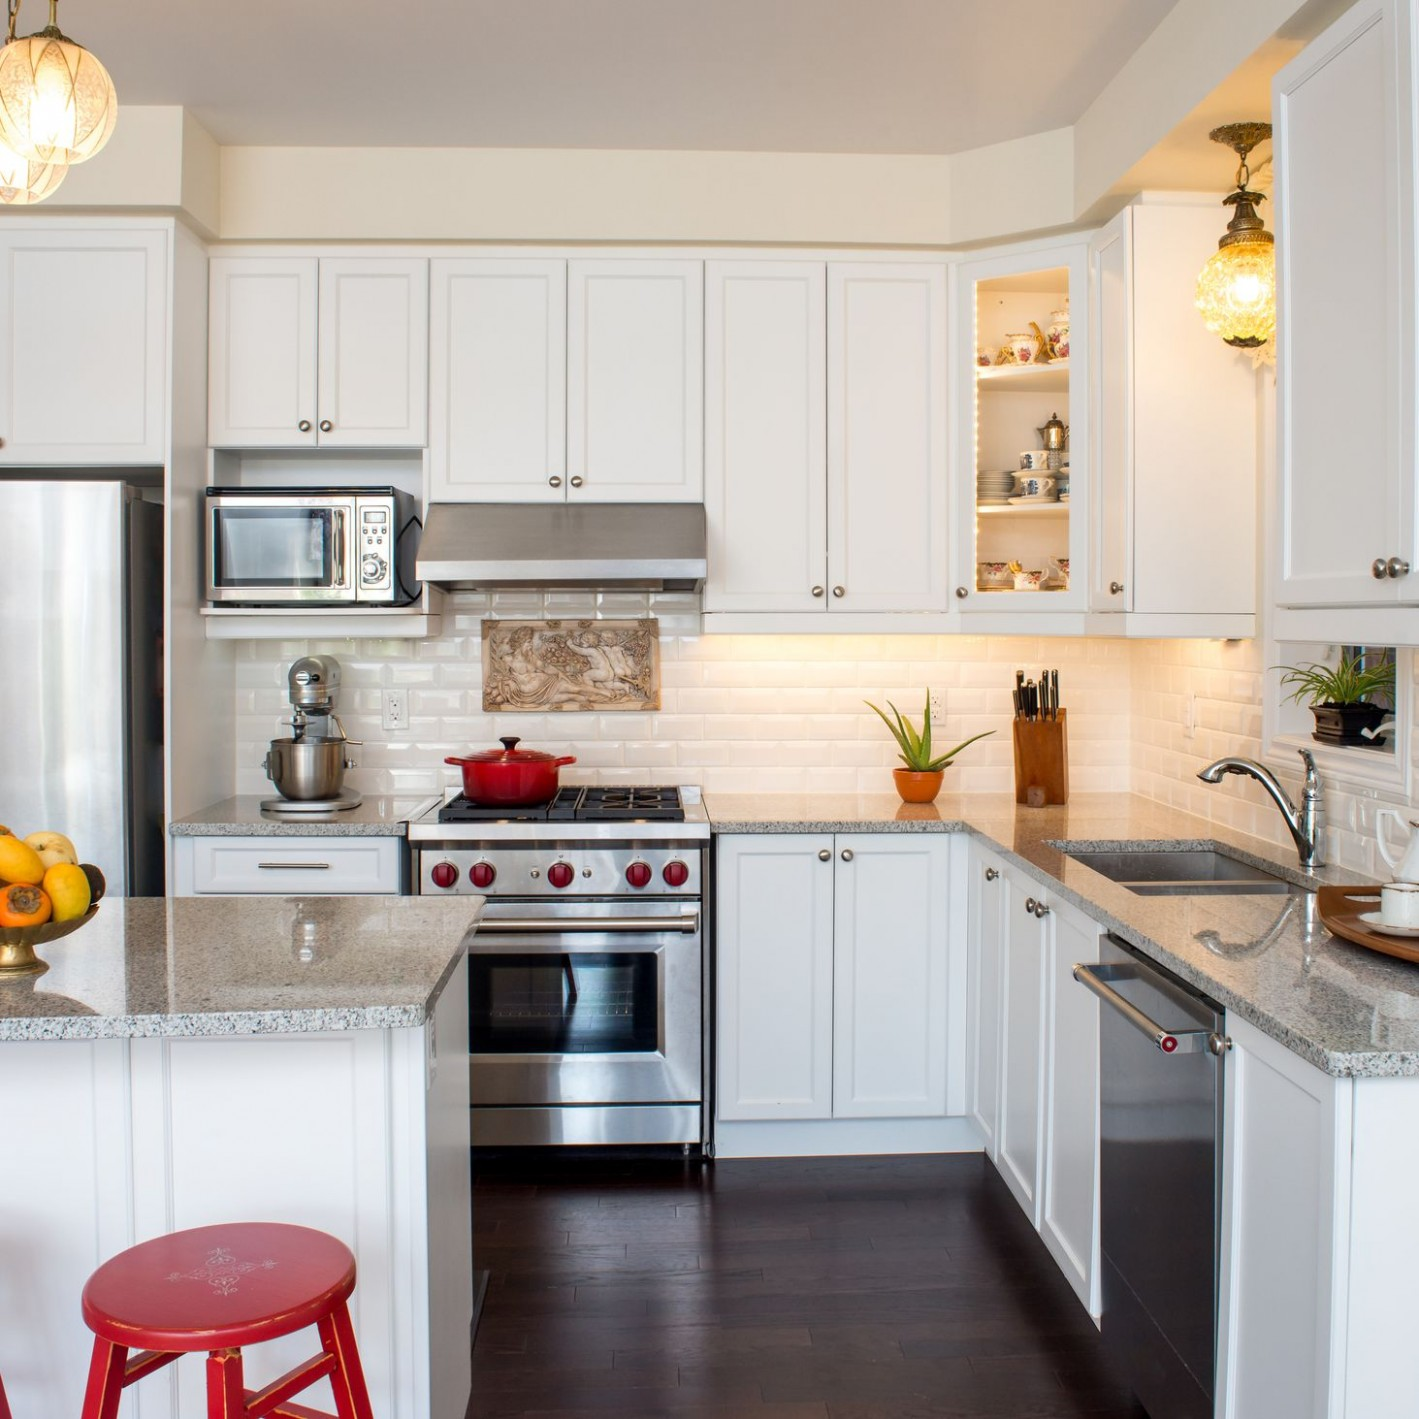 How to Fix Kitchen Cabinet Open Soffits - Shorter Kitchen Base Cabinets